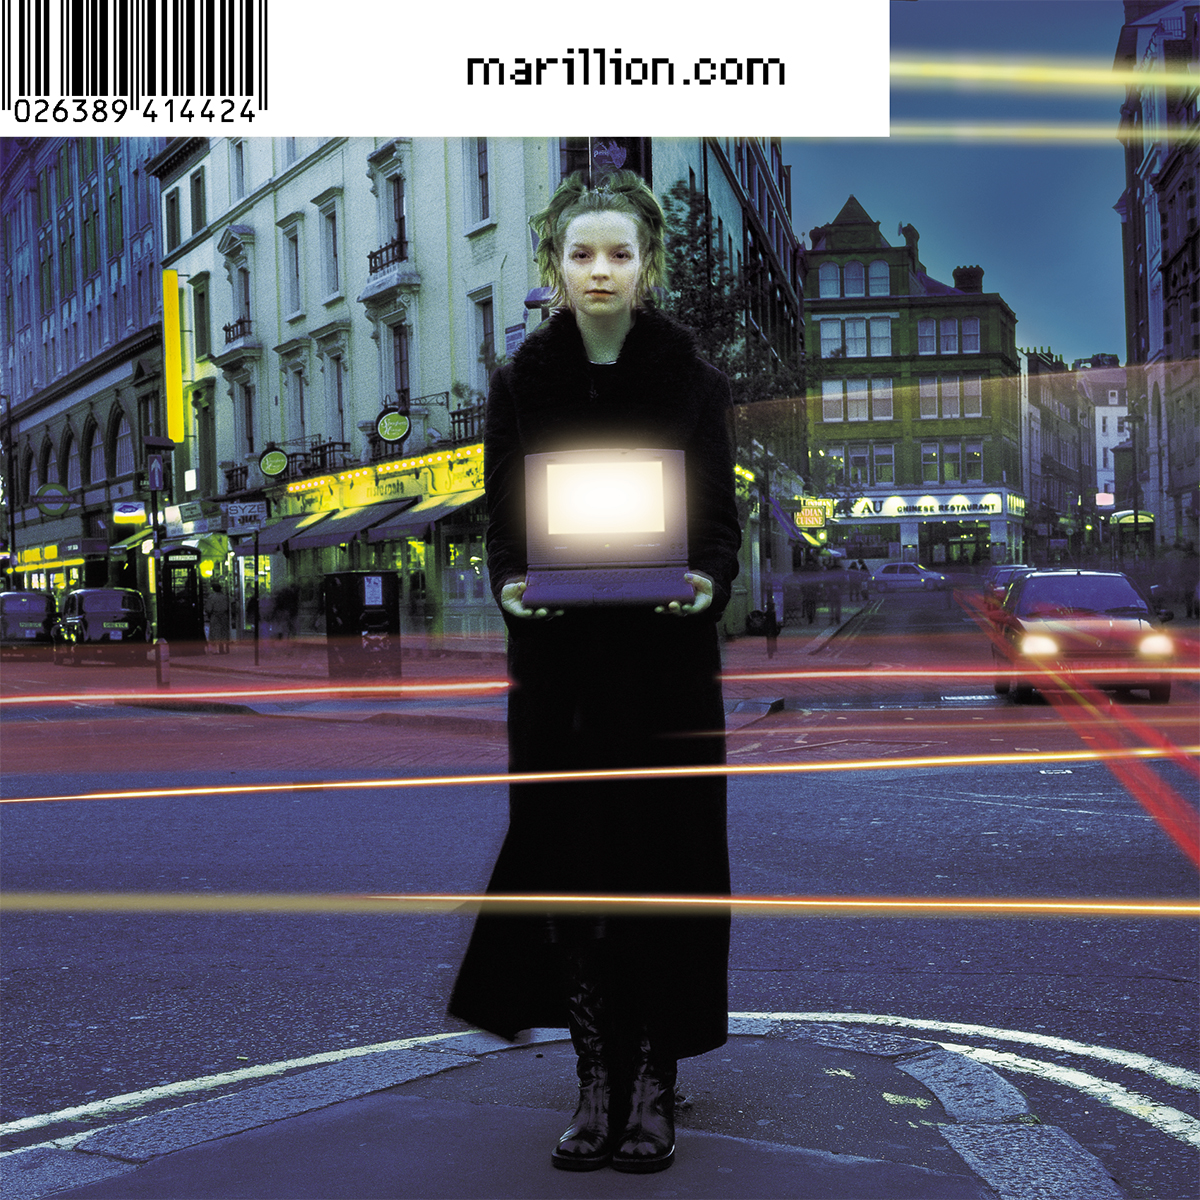 Marillion.com 320kbps Audio Download